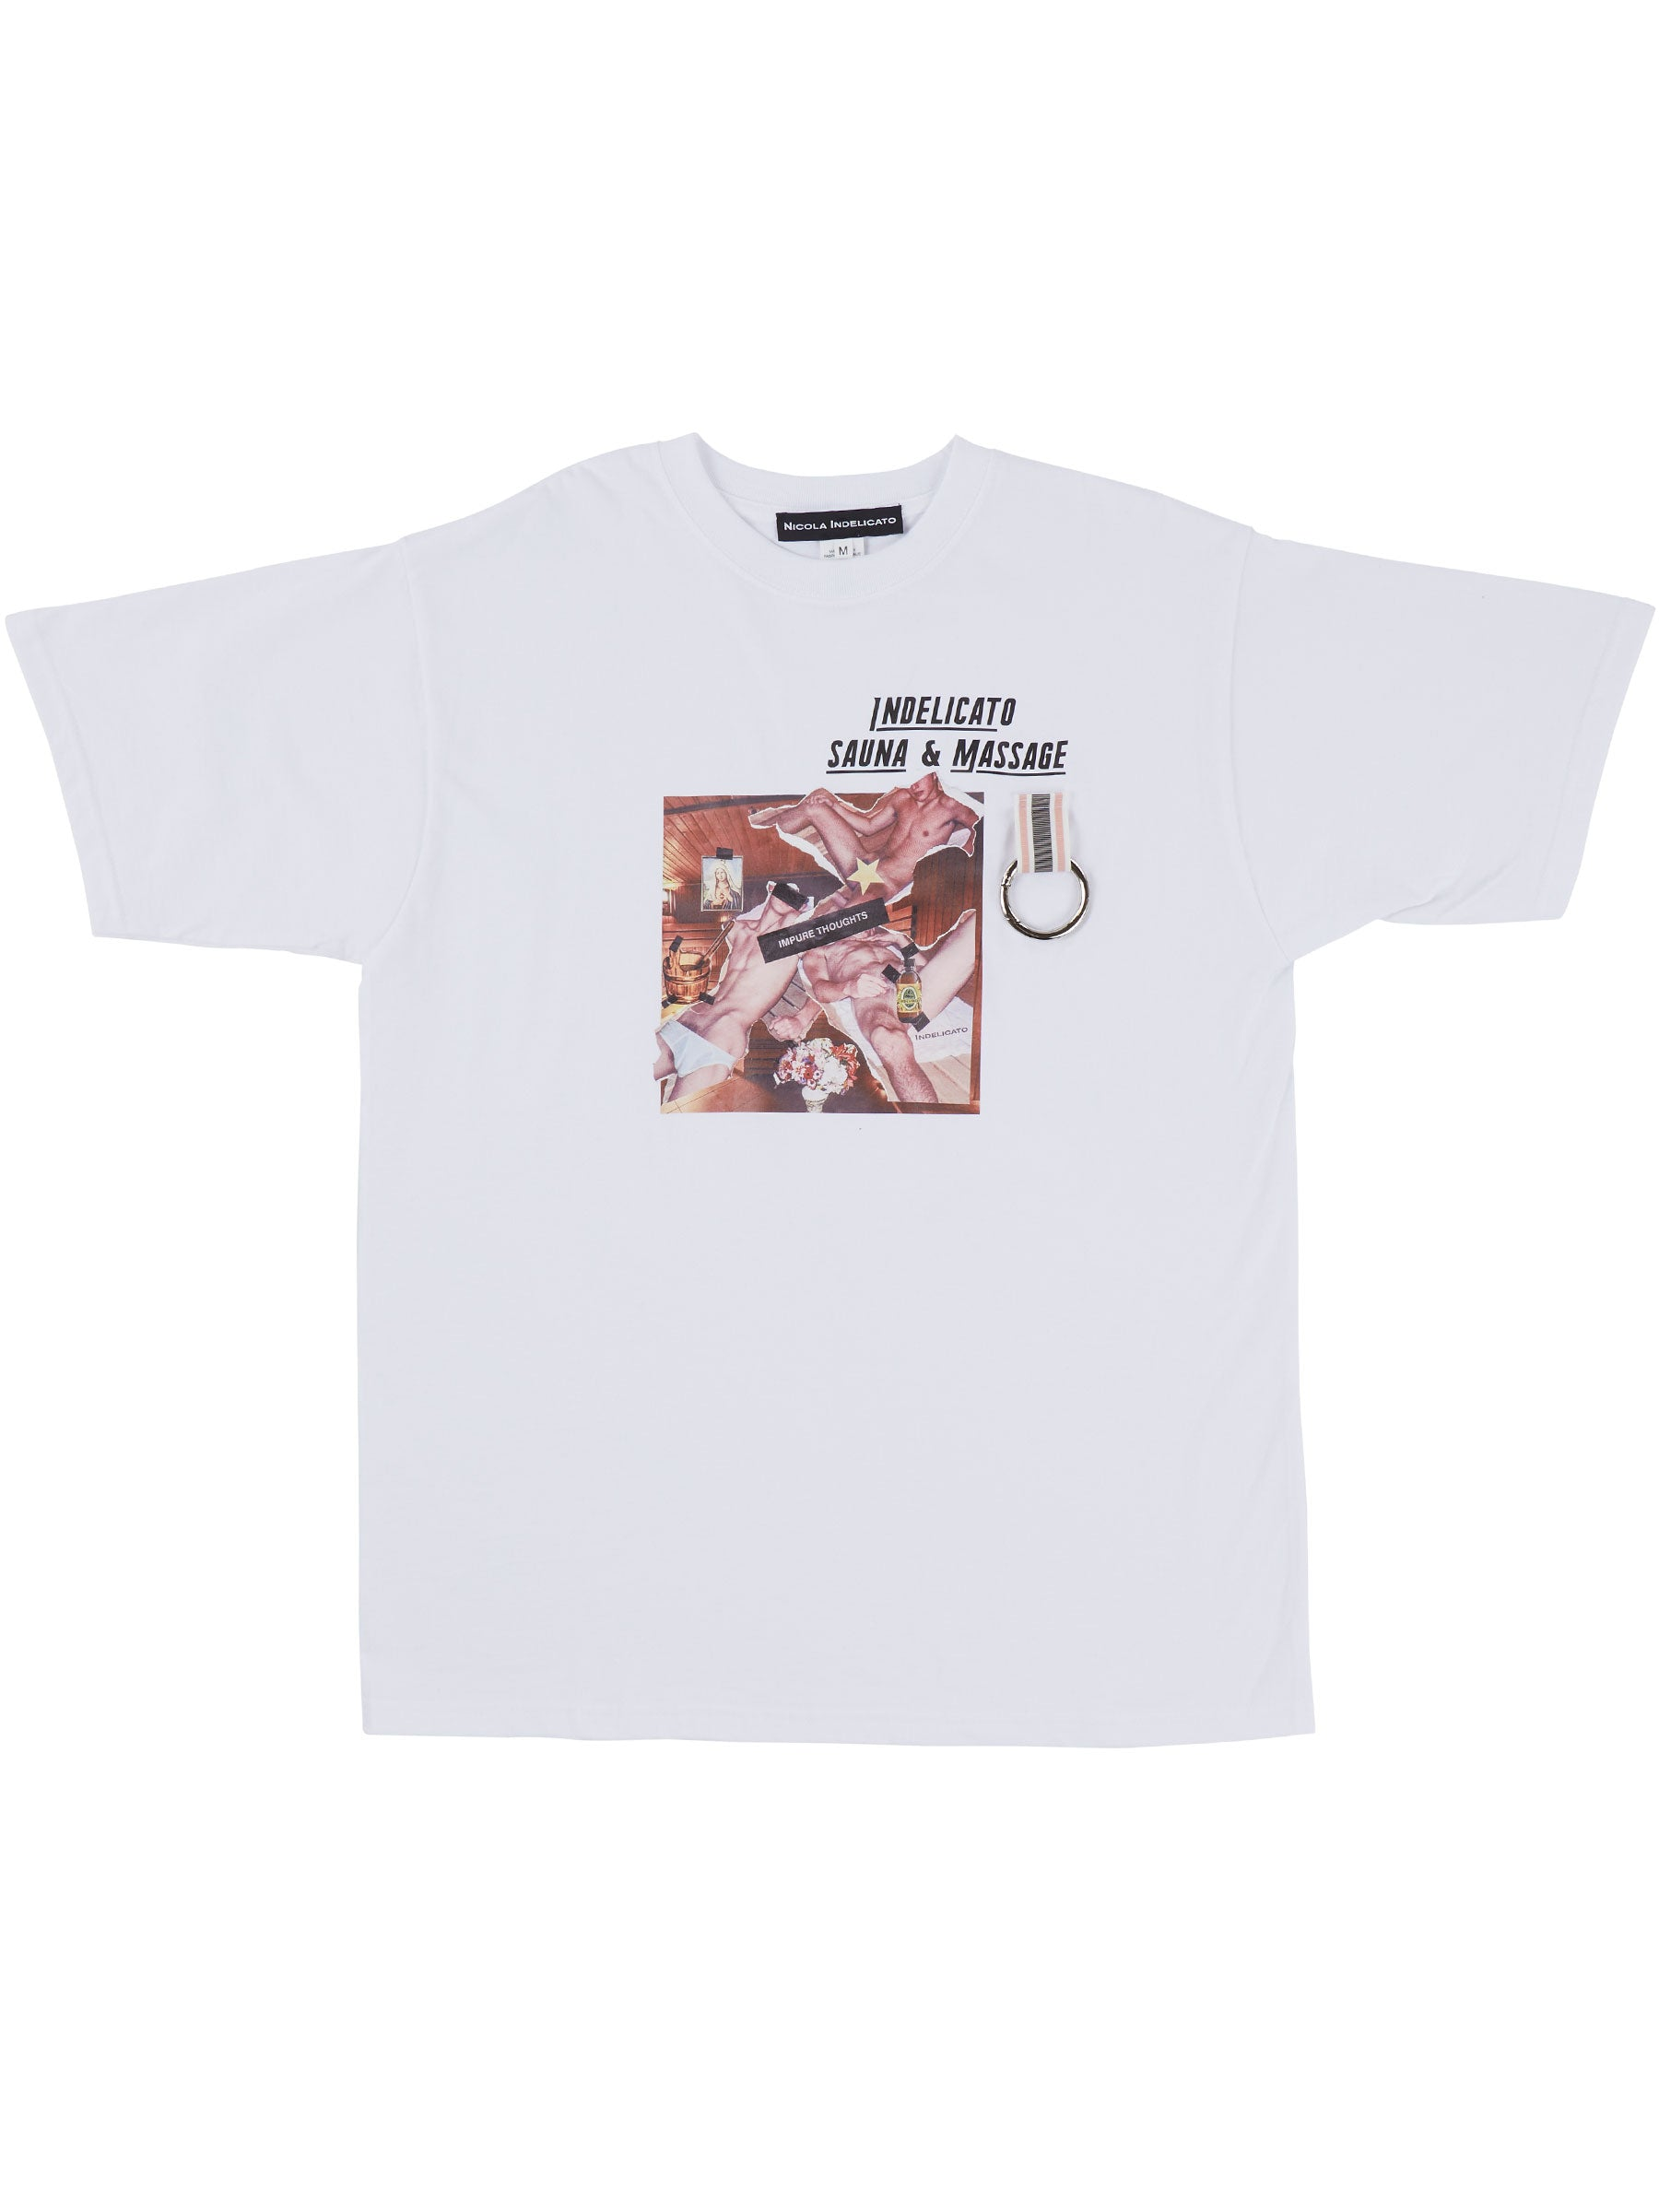 odd92 Nicola Indelicato Sauna & Massage T-Shirt Fall/Winter 2019 Menswear - 1